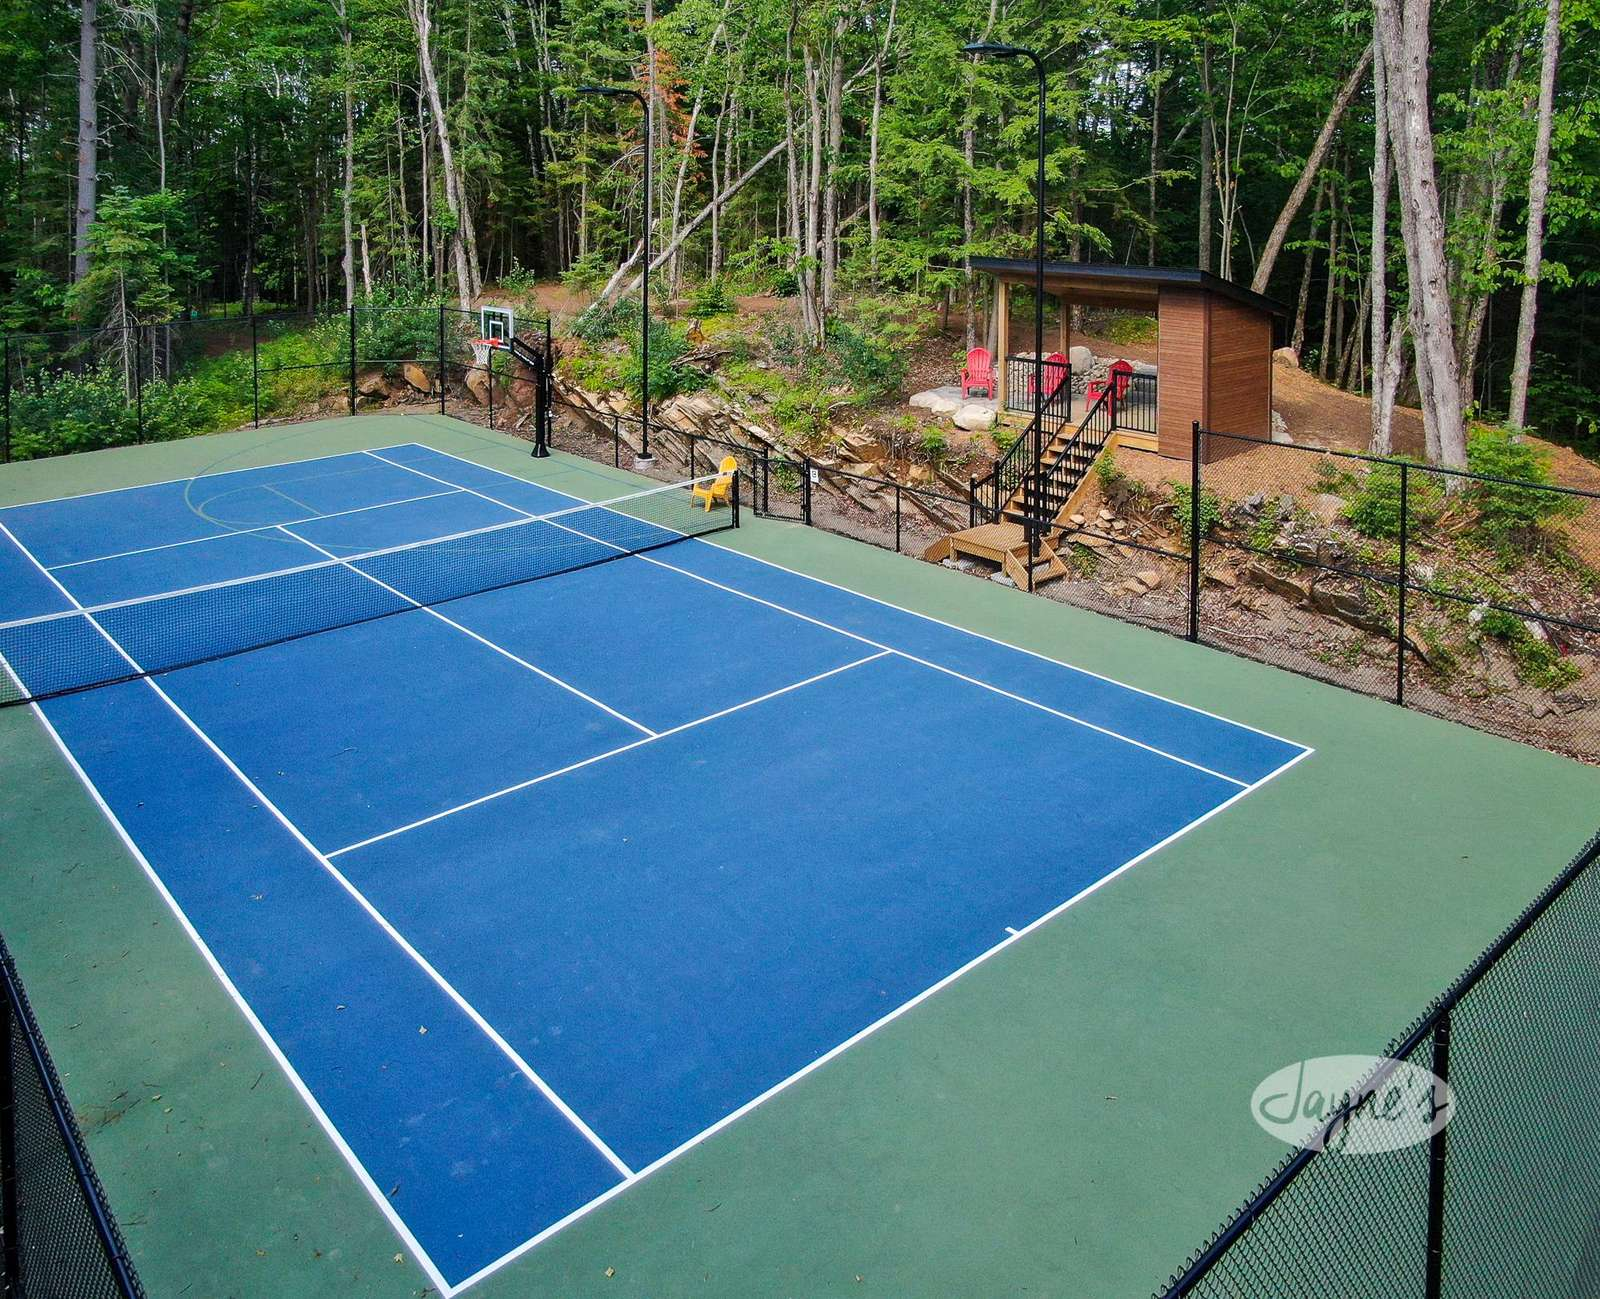 Tennis Court and Cabana